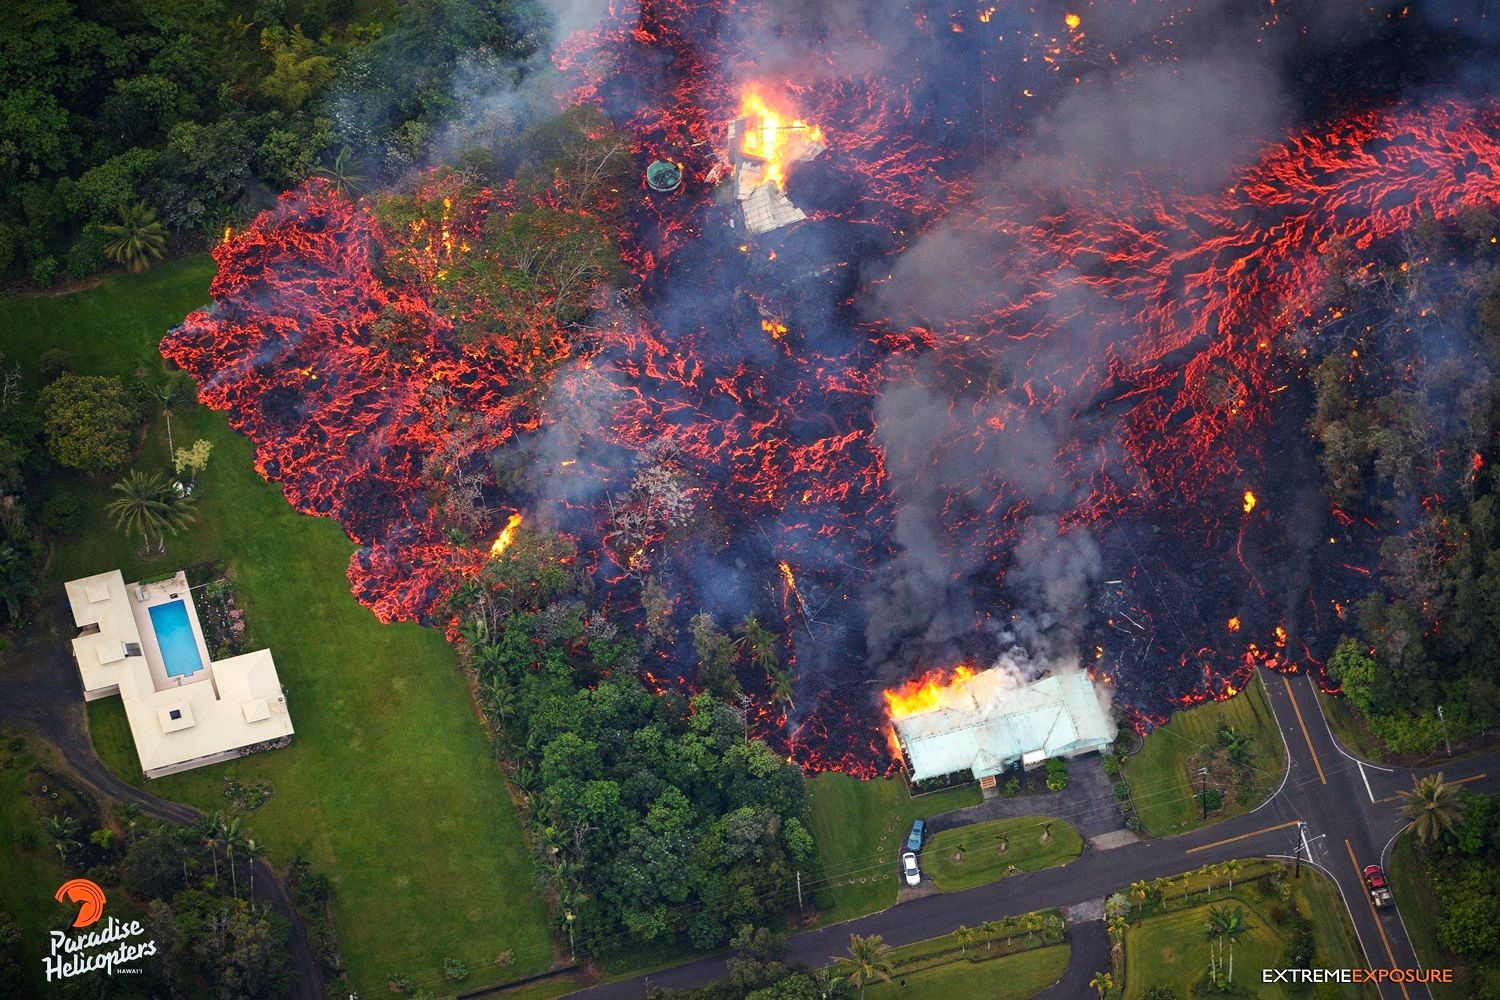 Kilauea Lower East rift zone - on these photos from 06.05.2018 have seen the progression of the lava flow - photos Bruce Omori / Paradise helicopters